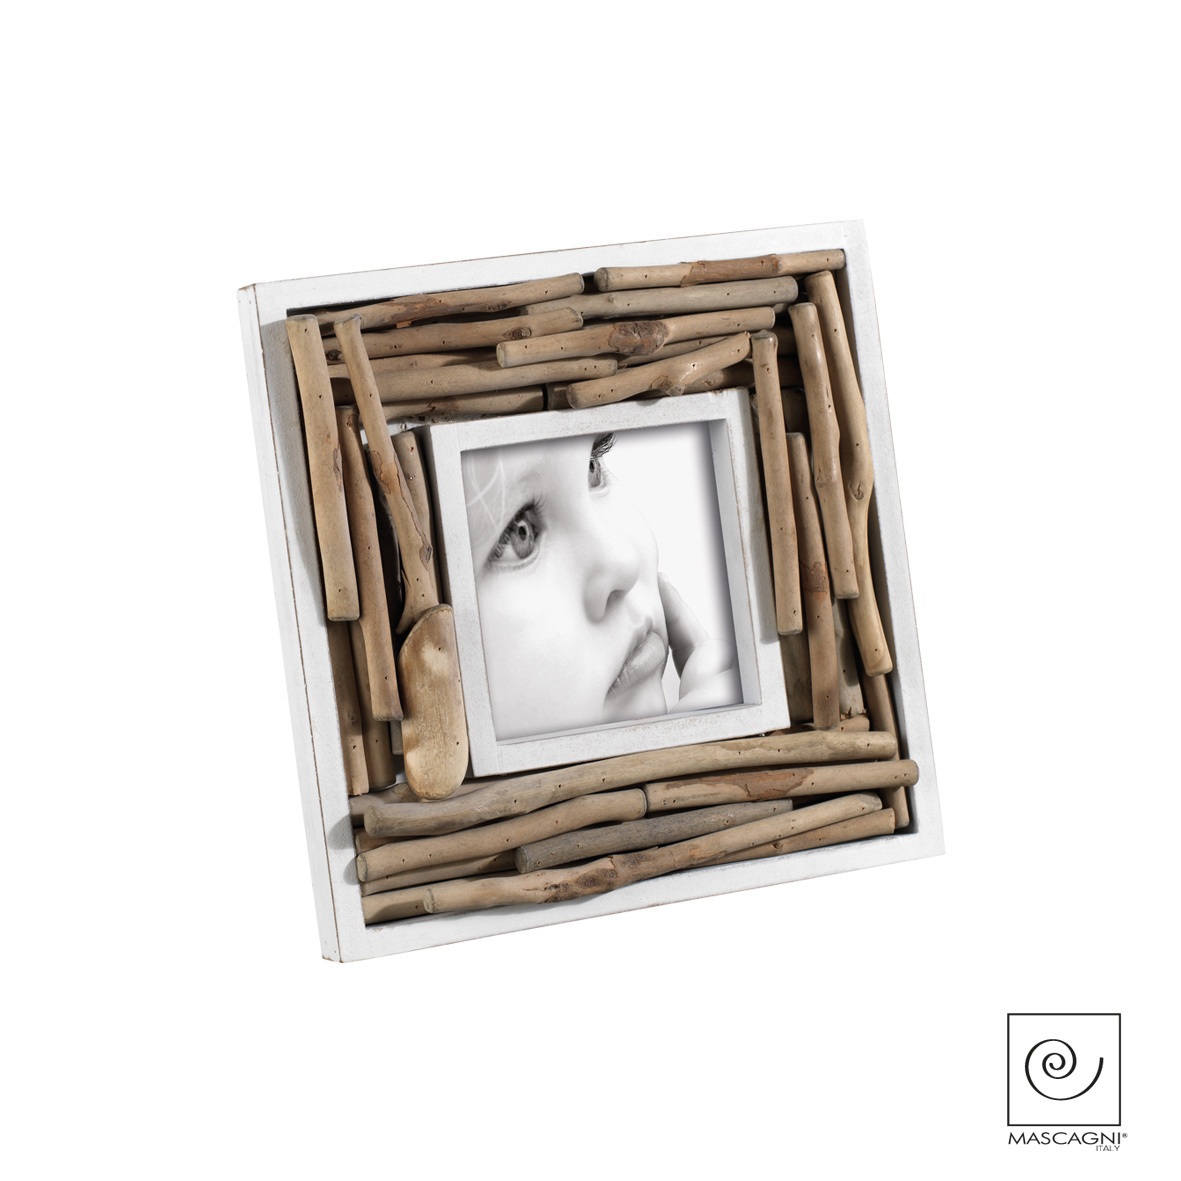 Art Mascagni A784 PHOTO FRAME 10X15